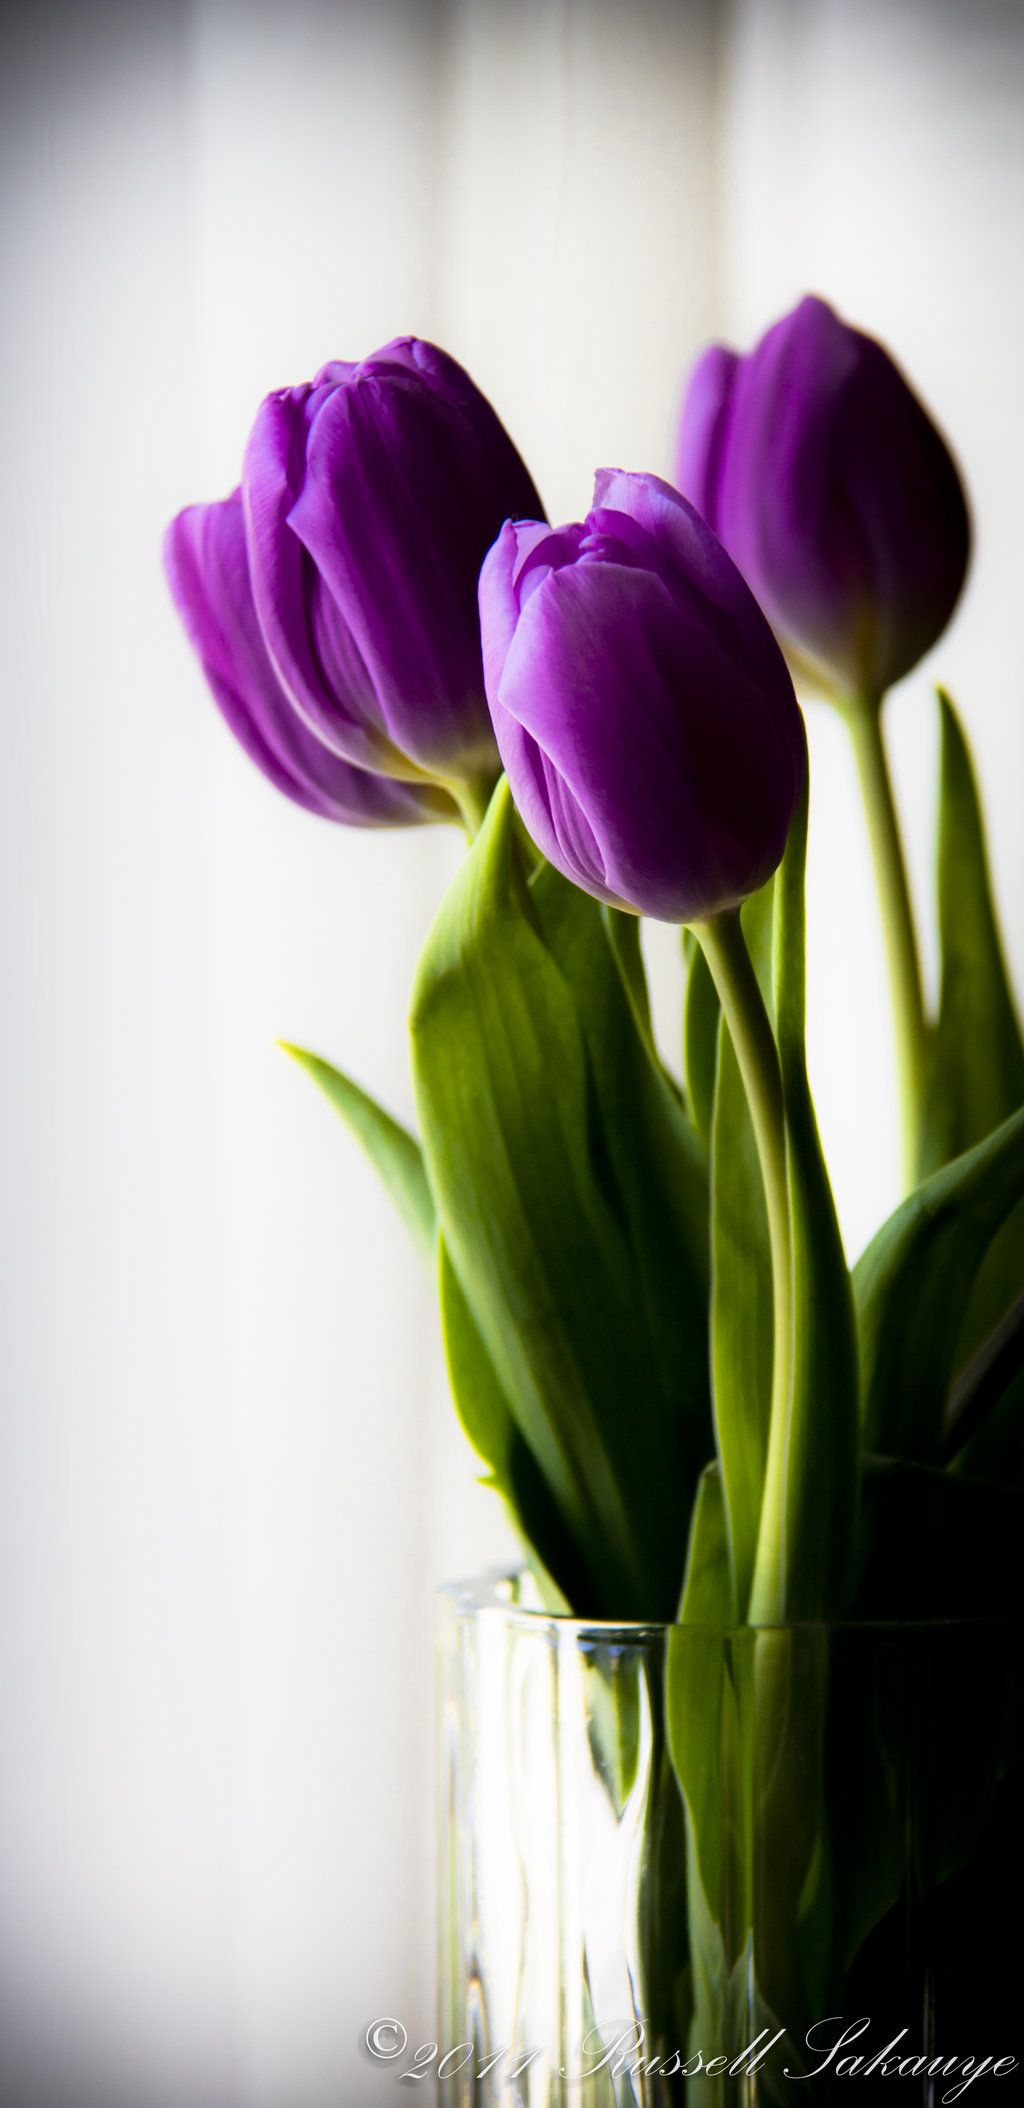 How To Grow Tulips And Other Perennials In Glass Jars In Your Home